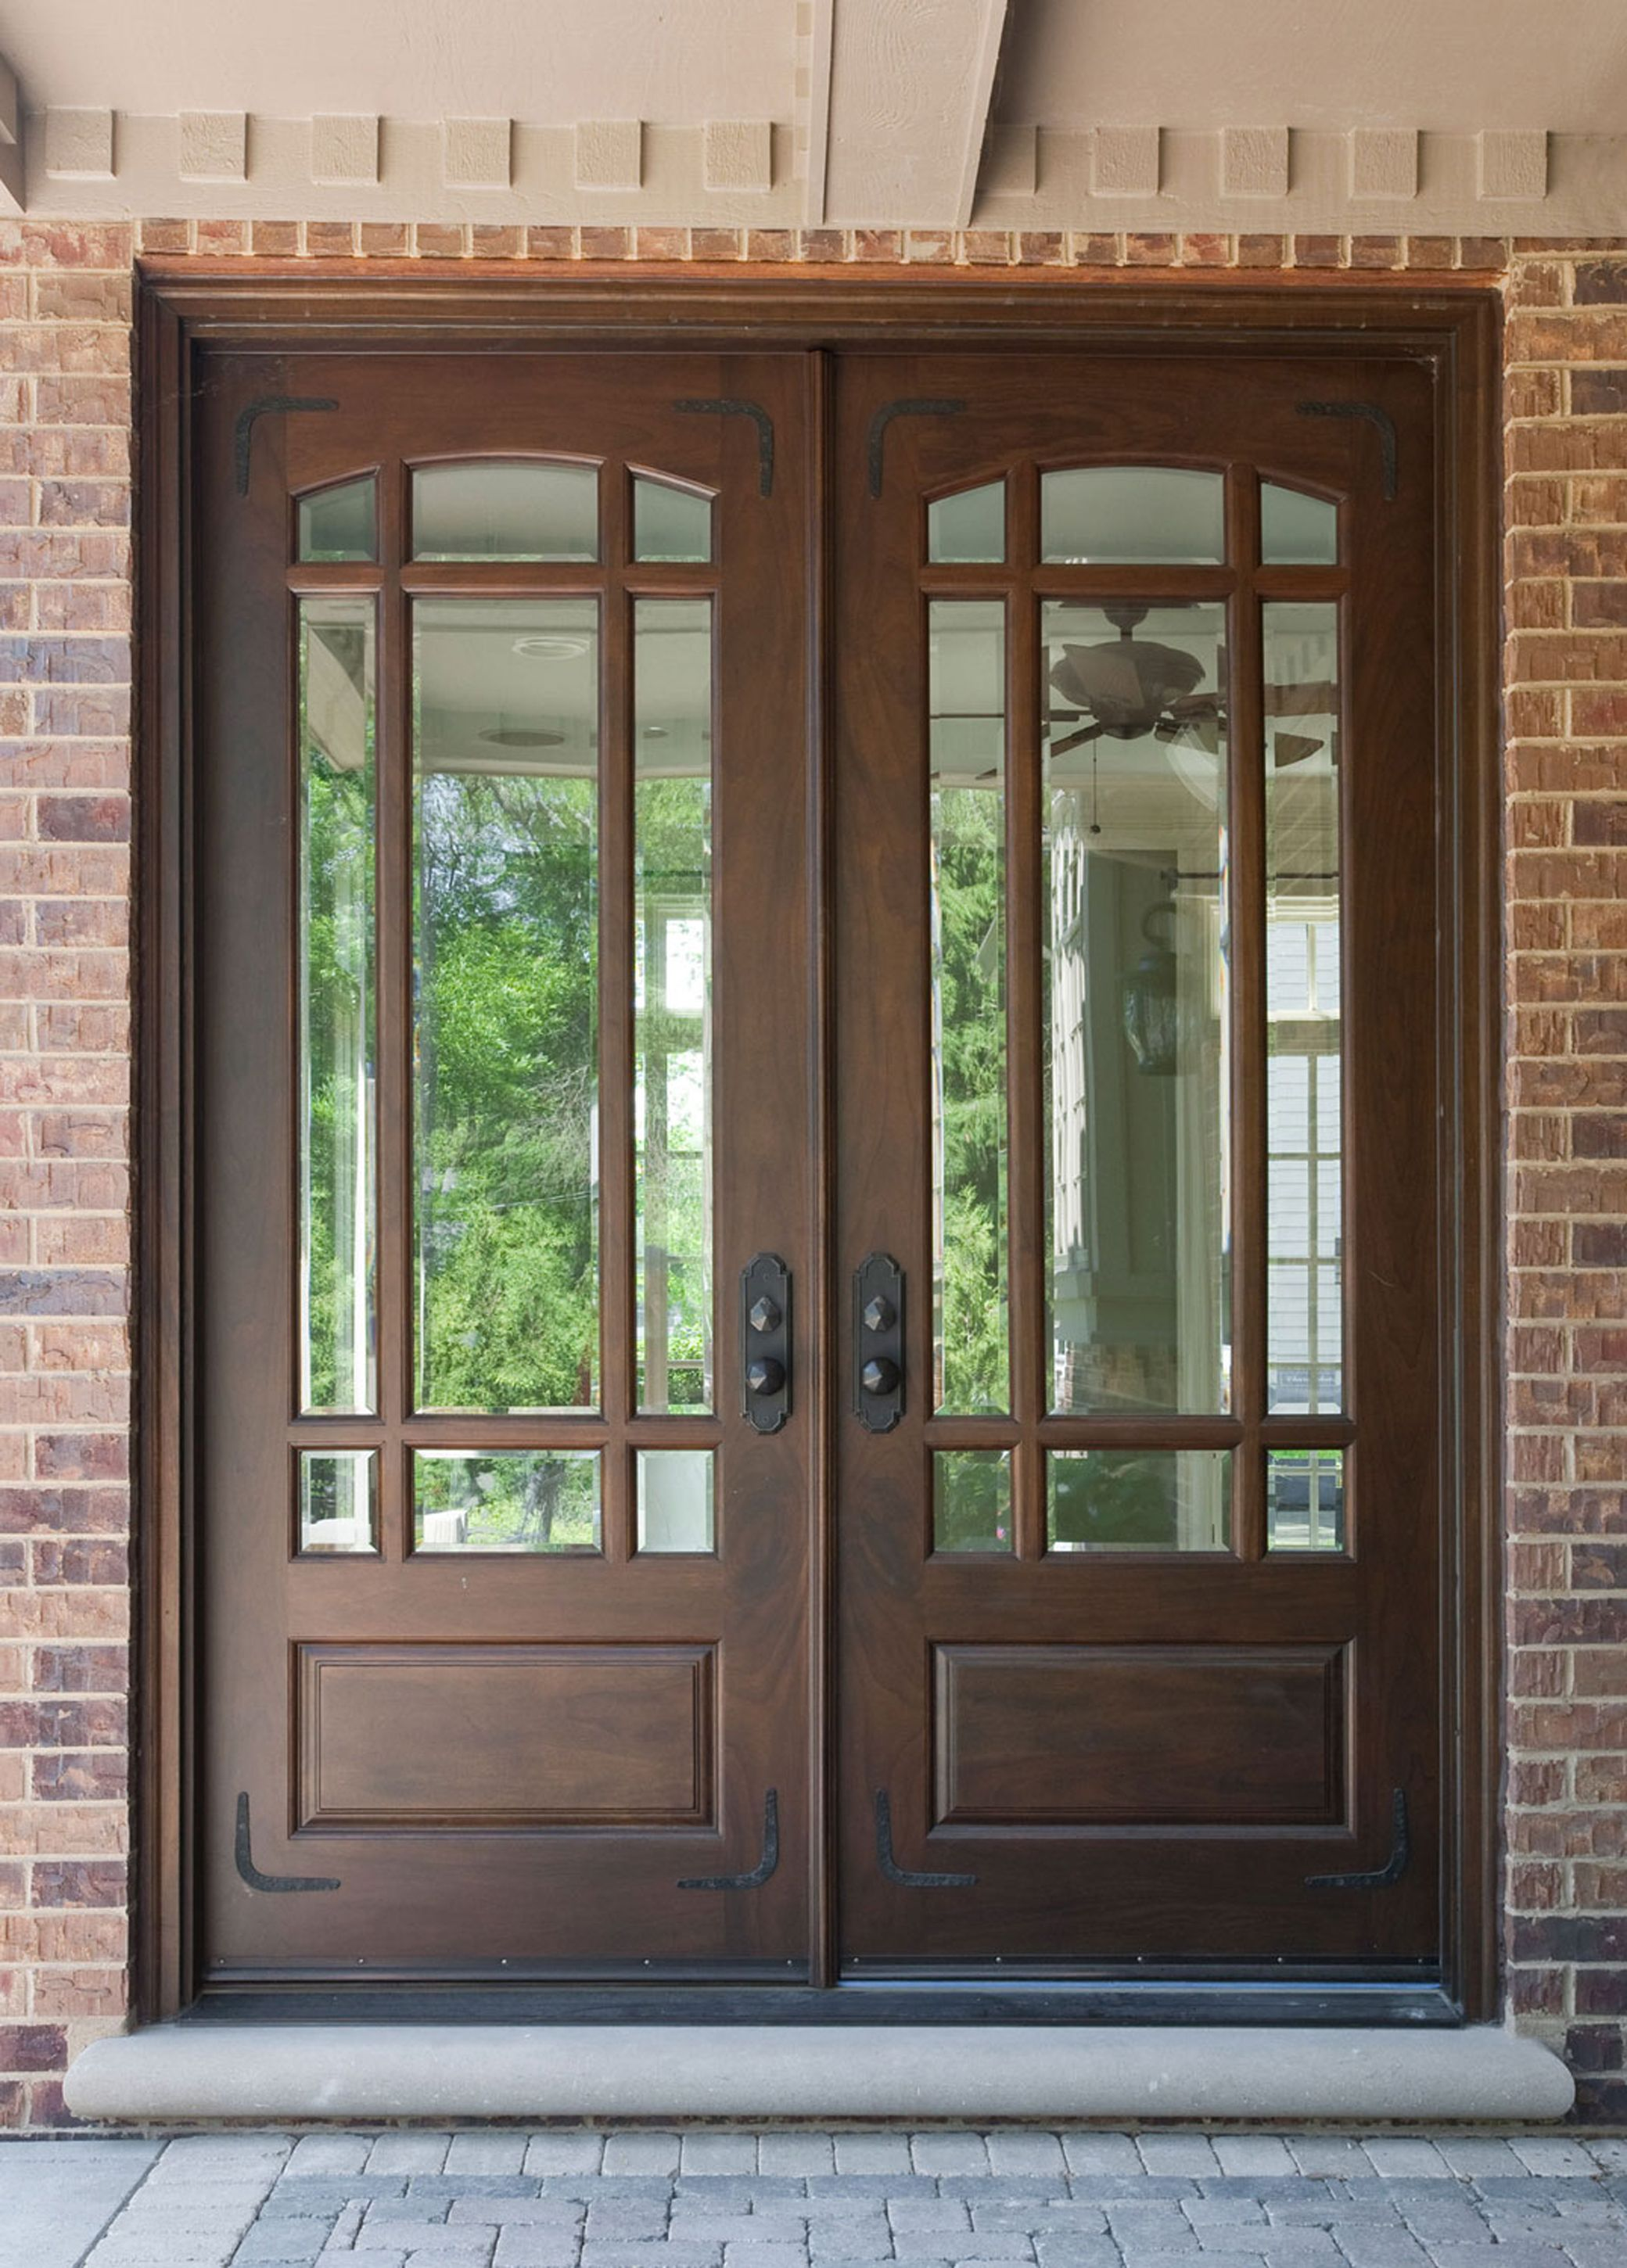 Glamorous chocolate wooden front entry door inspiration with glass accents and black handles together with brown